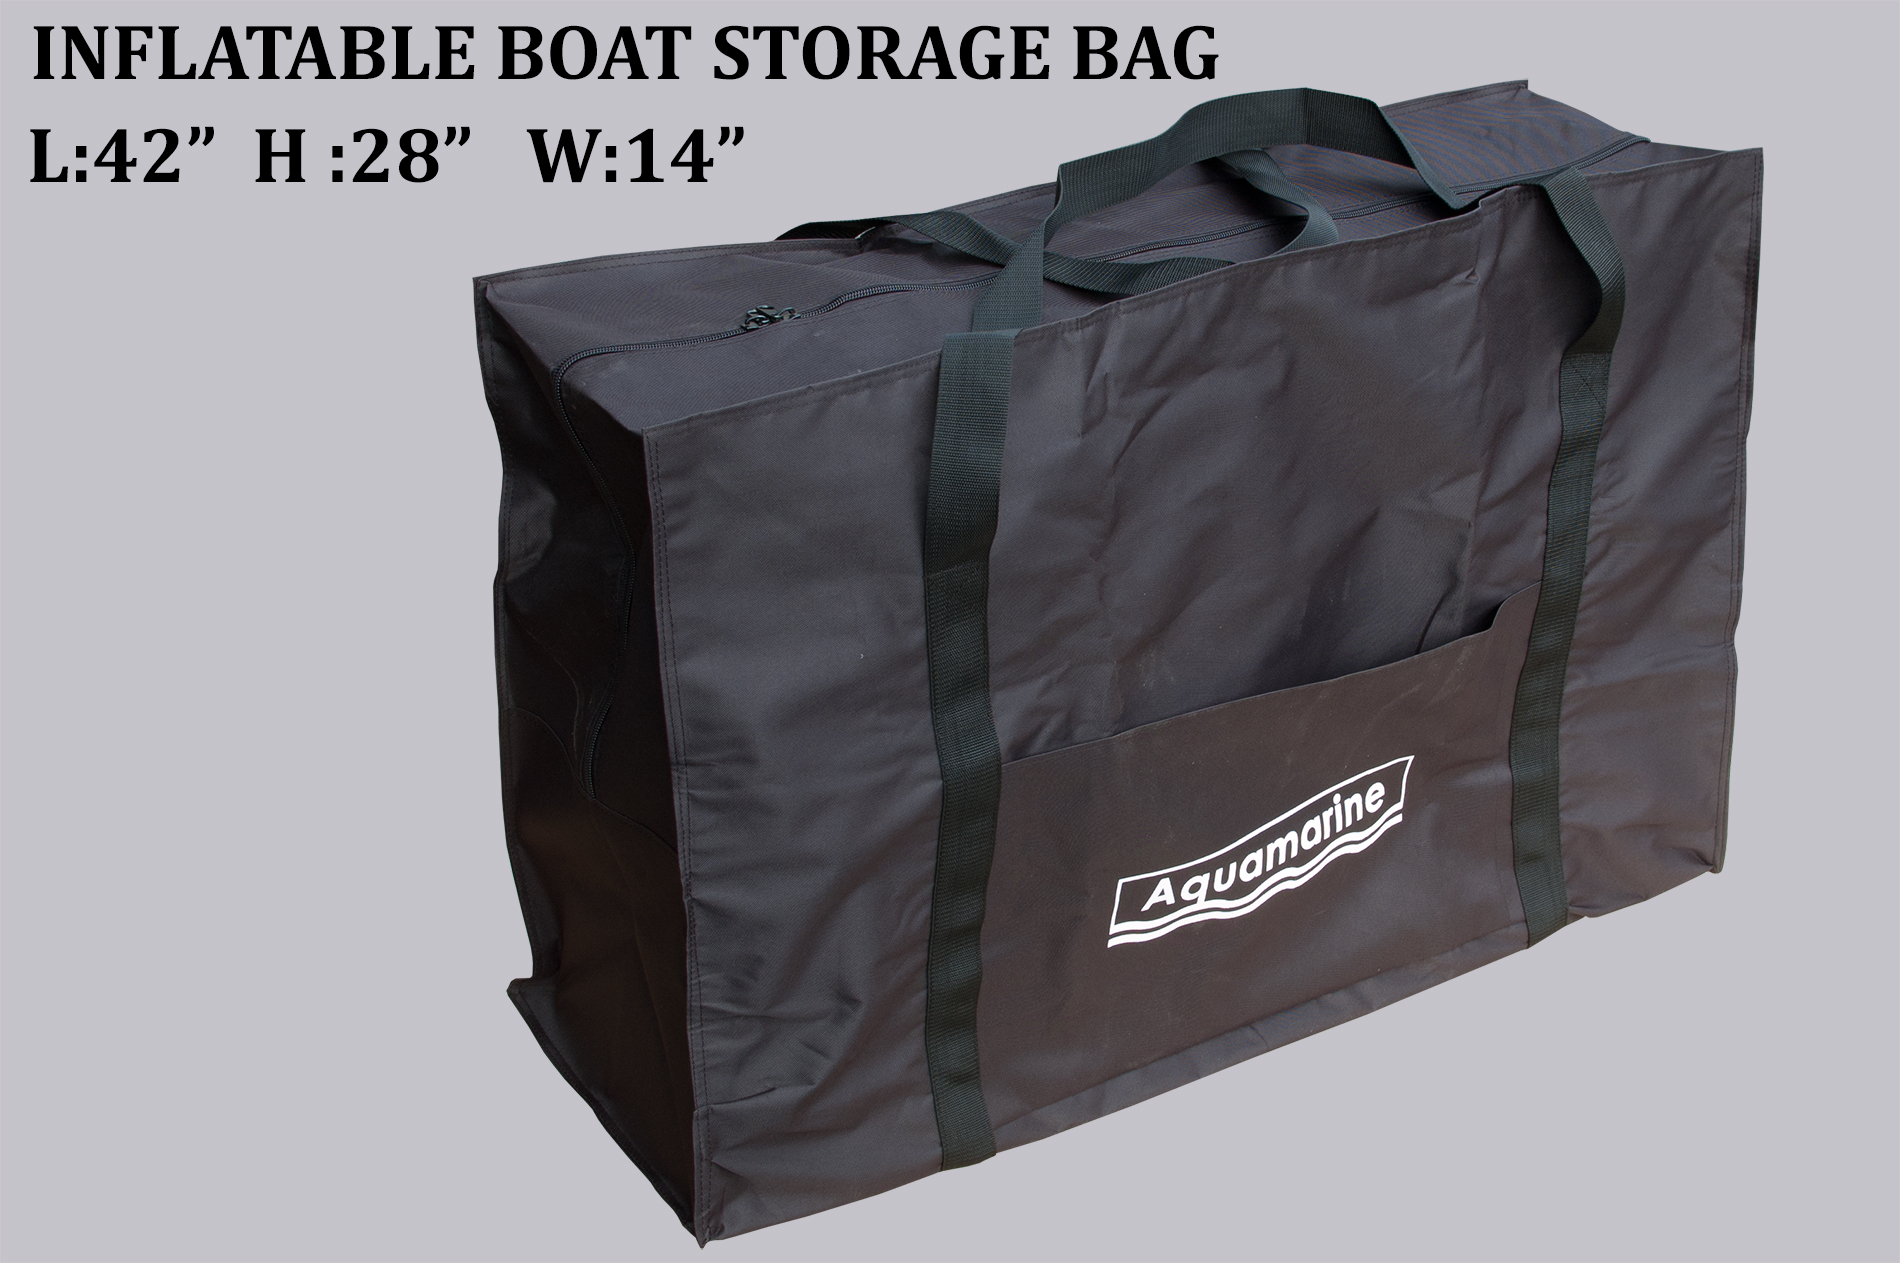 Storage bag for inflatable boat ... : boat anchor storage bag  - Aquiesqueretaro.Com